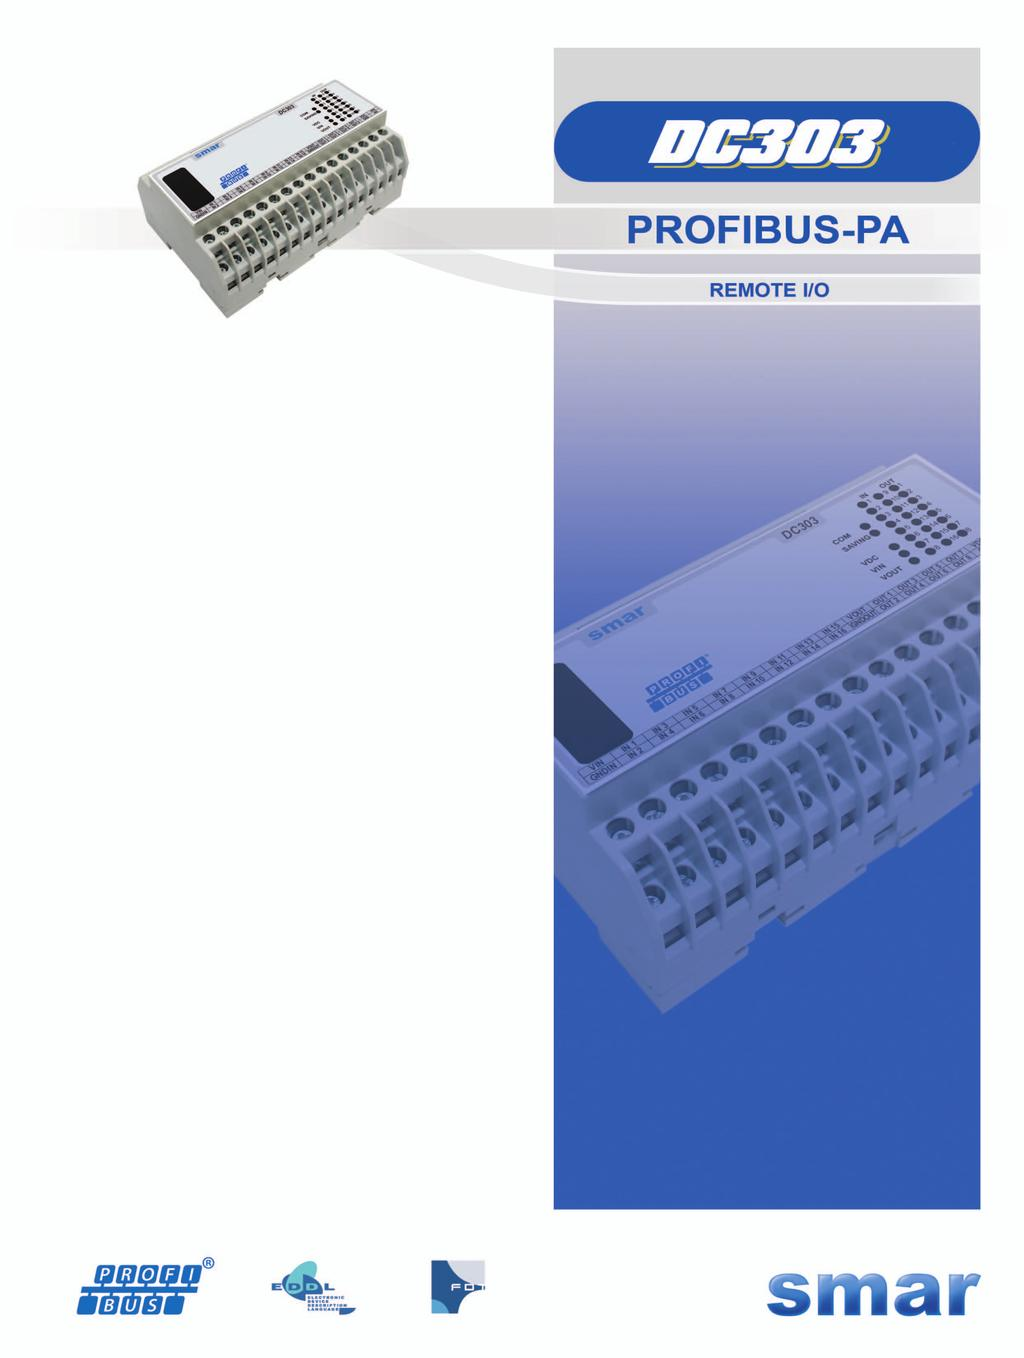 Discrete I O Connected Direct Onto Input And Output Function Blocks Traditional Wiring Method Of An Npn Proximity Sensor Without Using Plc Profibus Pa